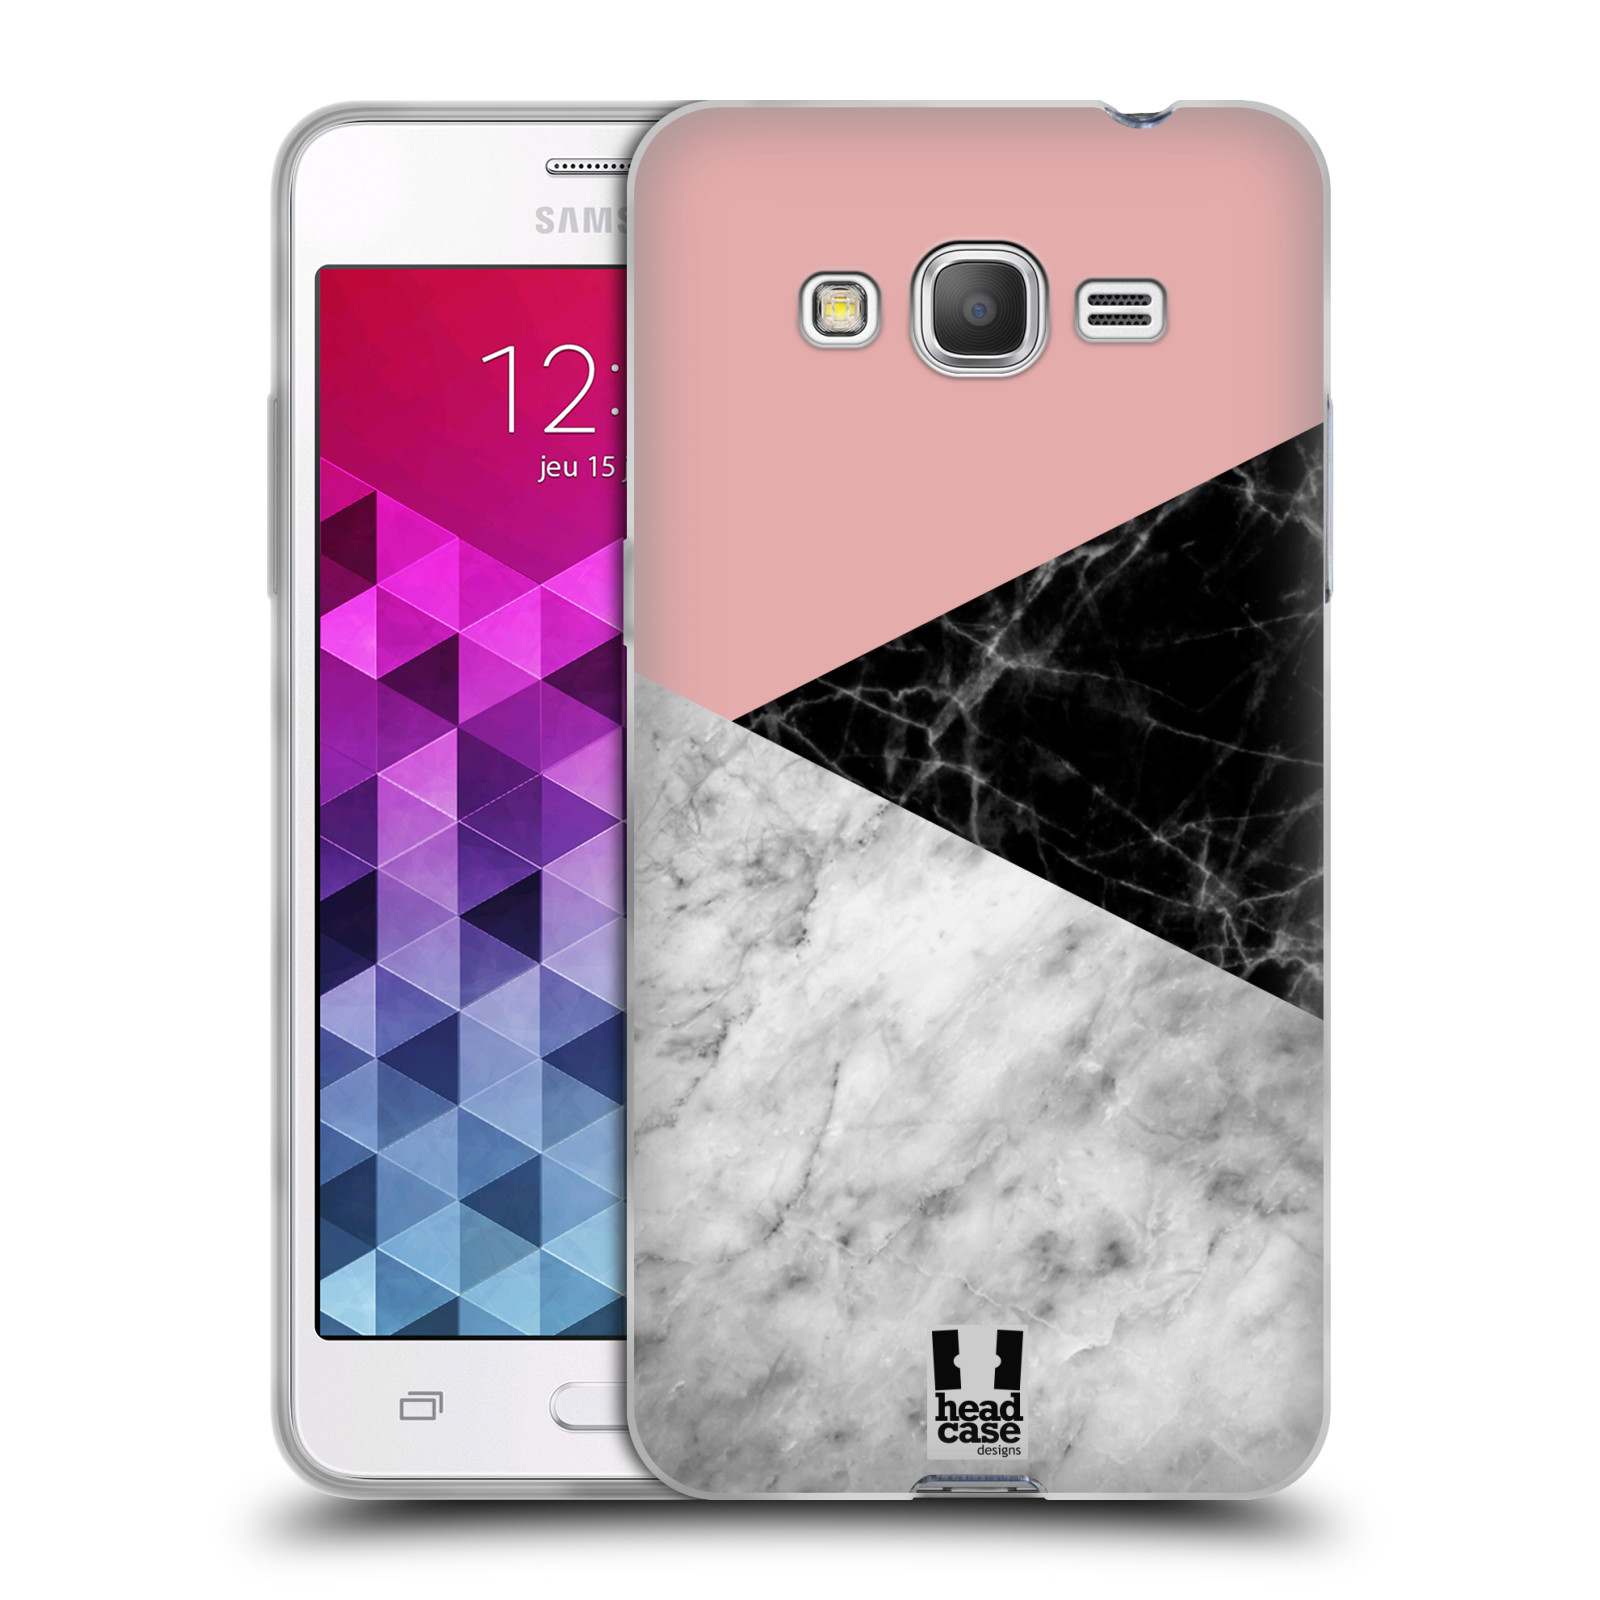 Silikonové pouzdro na mobil Samsung Galaxy Grand Prime VE - Head Case -  Mramor mix empty fc679e67ca2